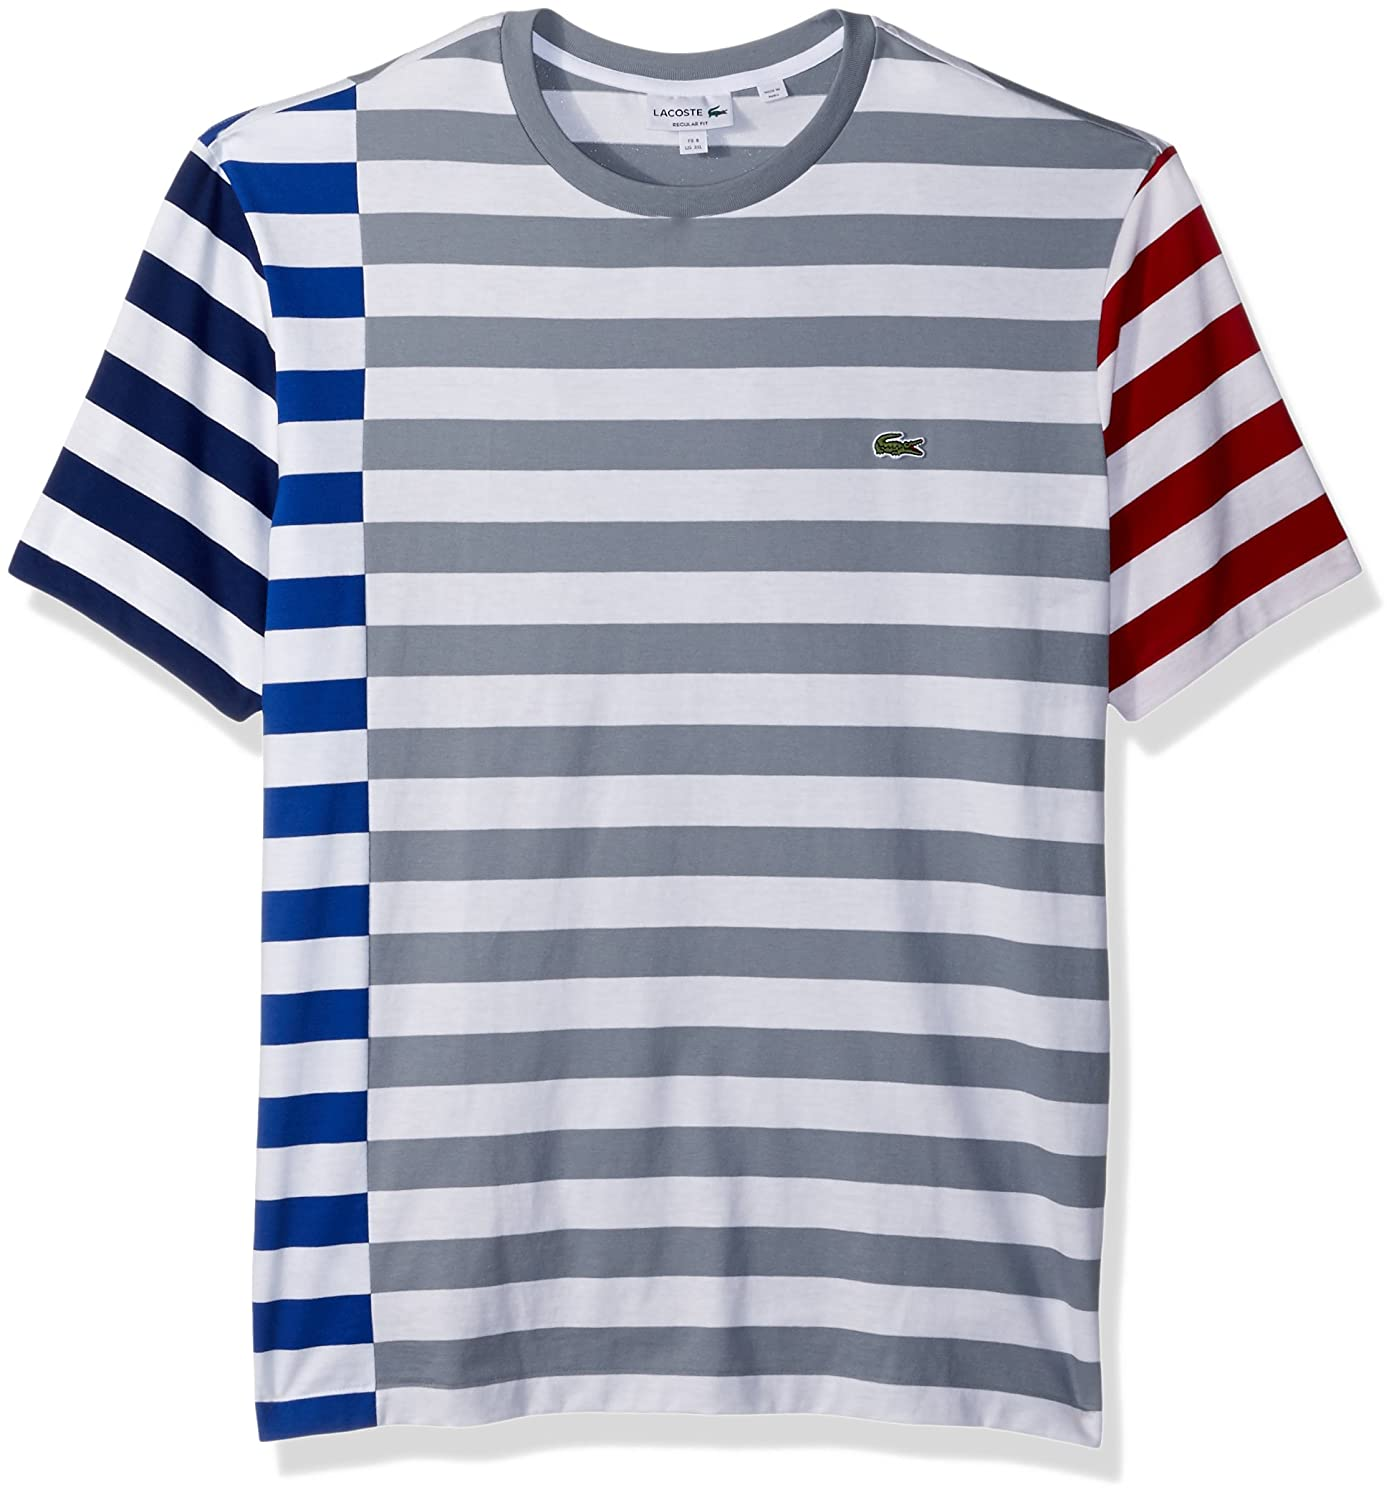 ab0f4a35 Lacoste Men's Short Sleeve Broken Striped Jersey Tee-Relaxed Fit |  Amazon.com